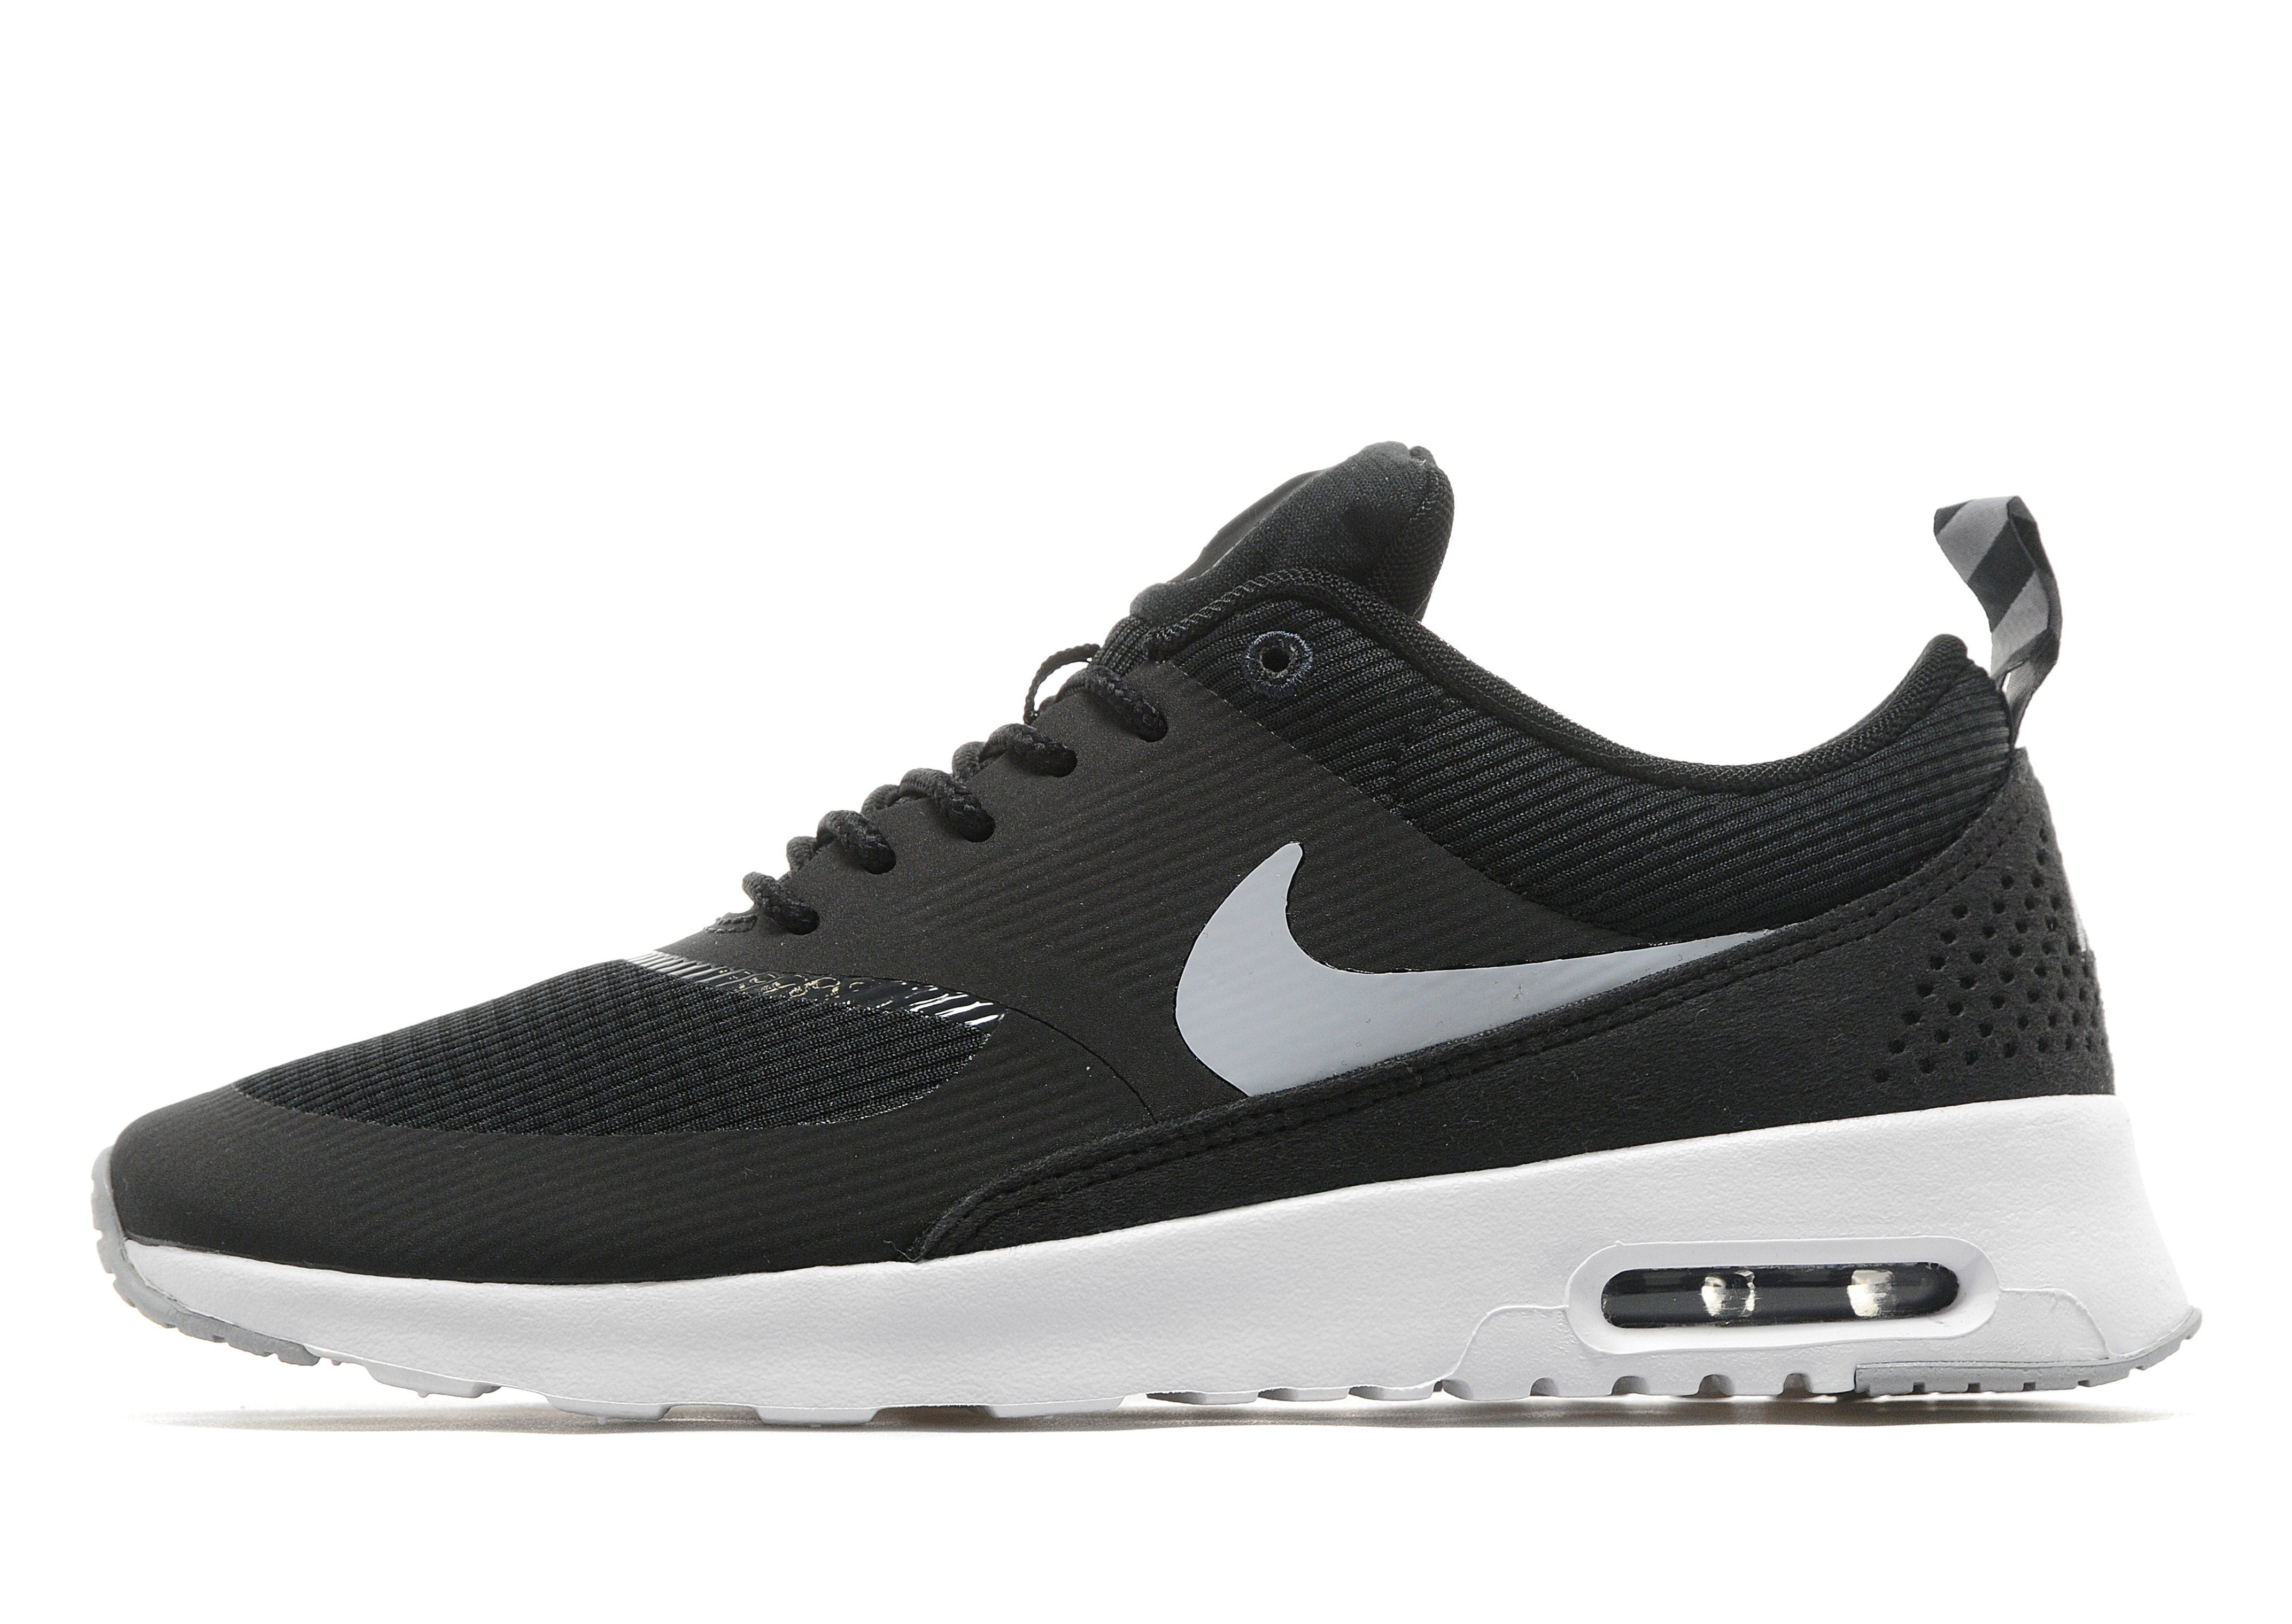 nike air max thea women 39 s jd sports. Black Bedroom Furniture Sets. Home Design Ideas